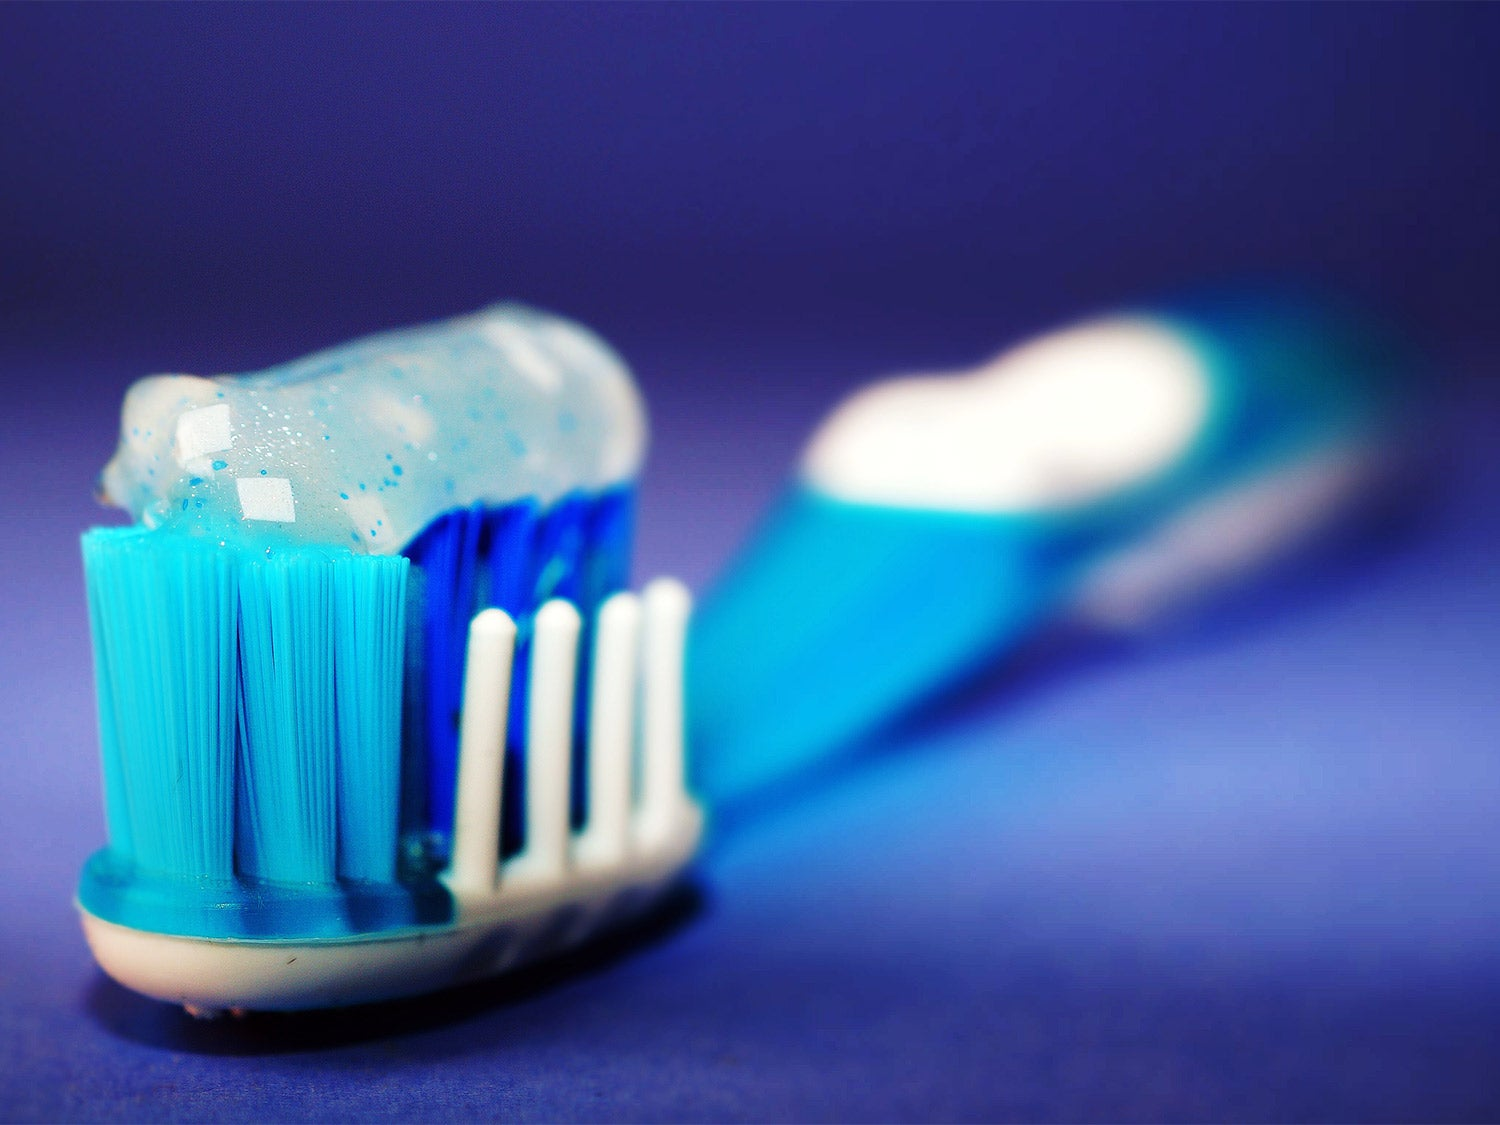 Toothbrush with toothpaste.